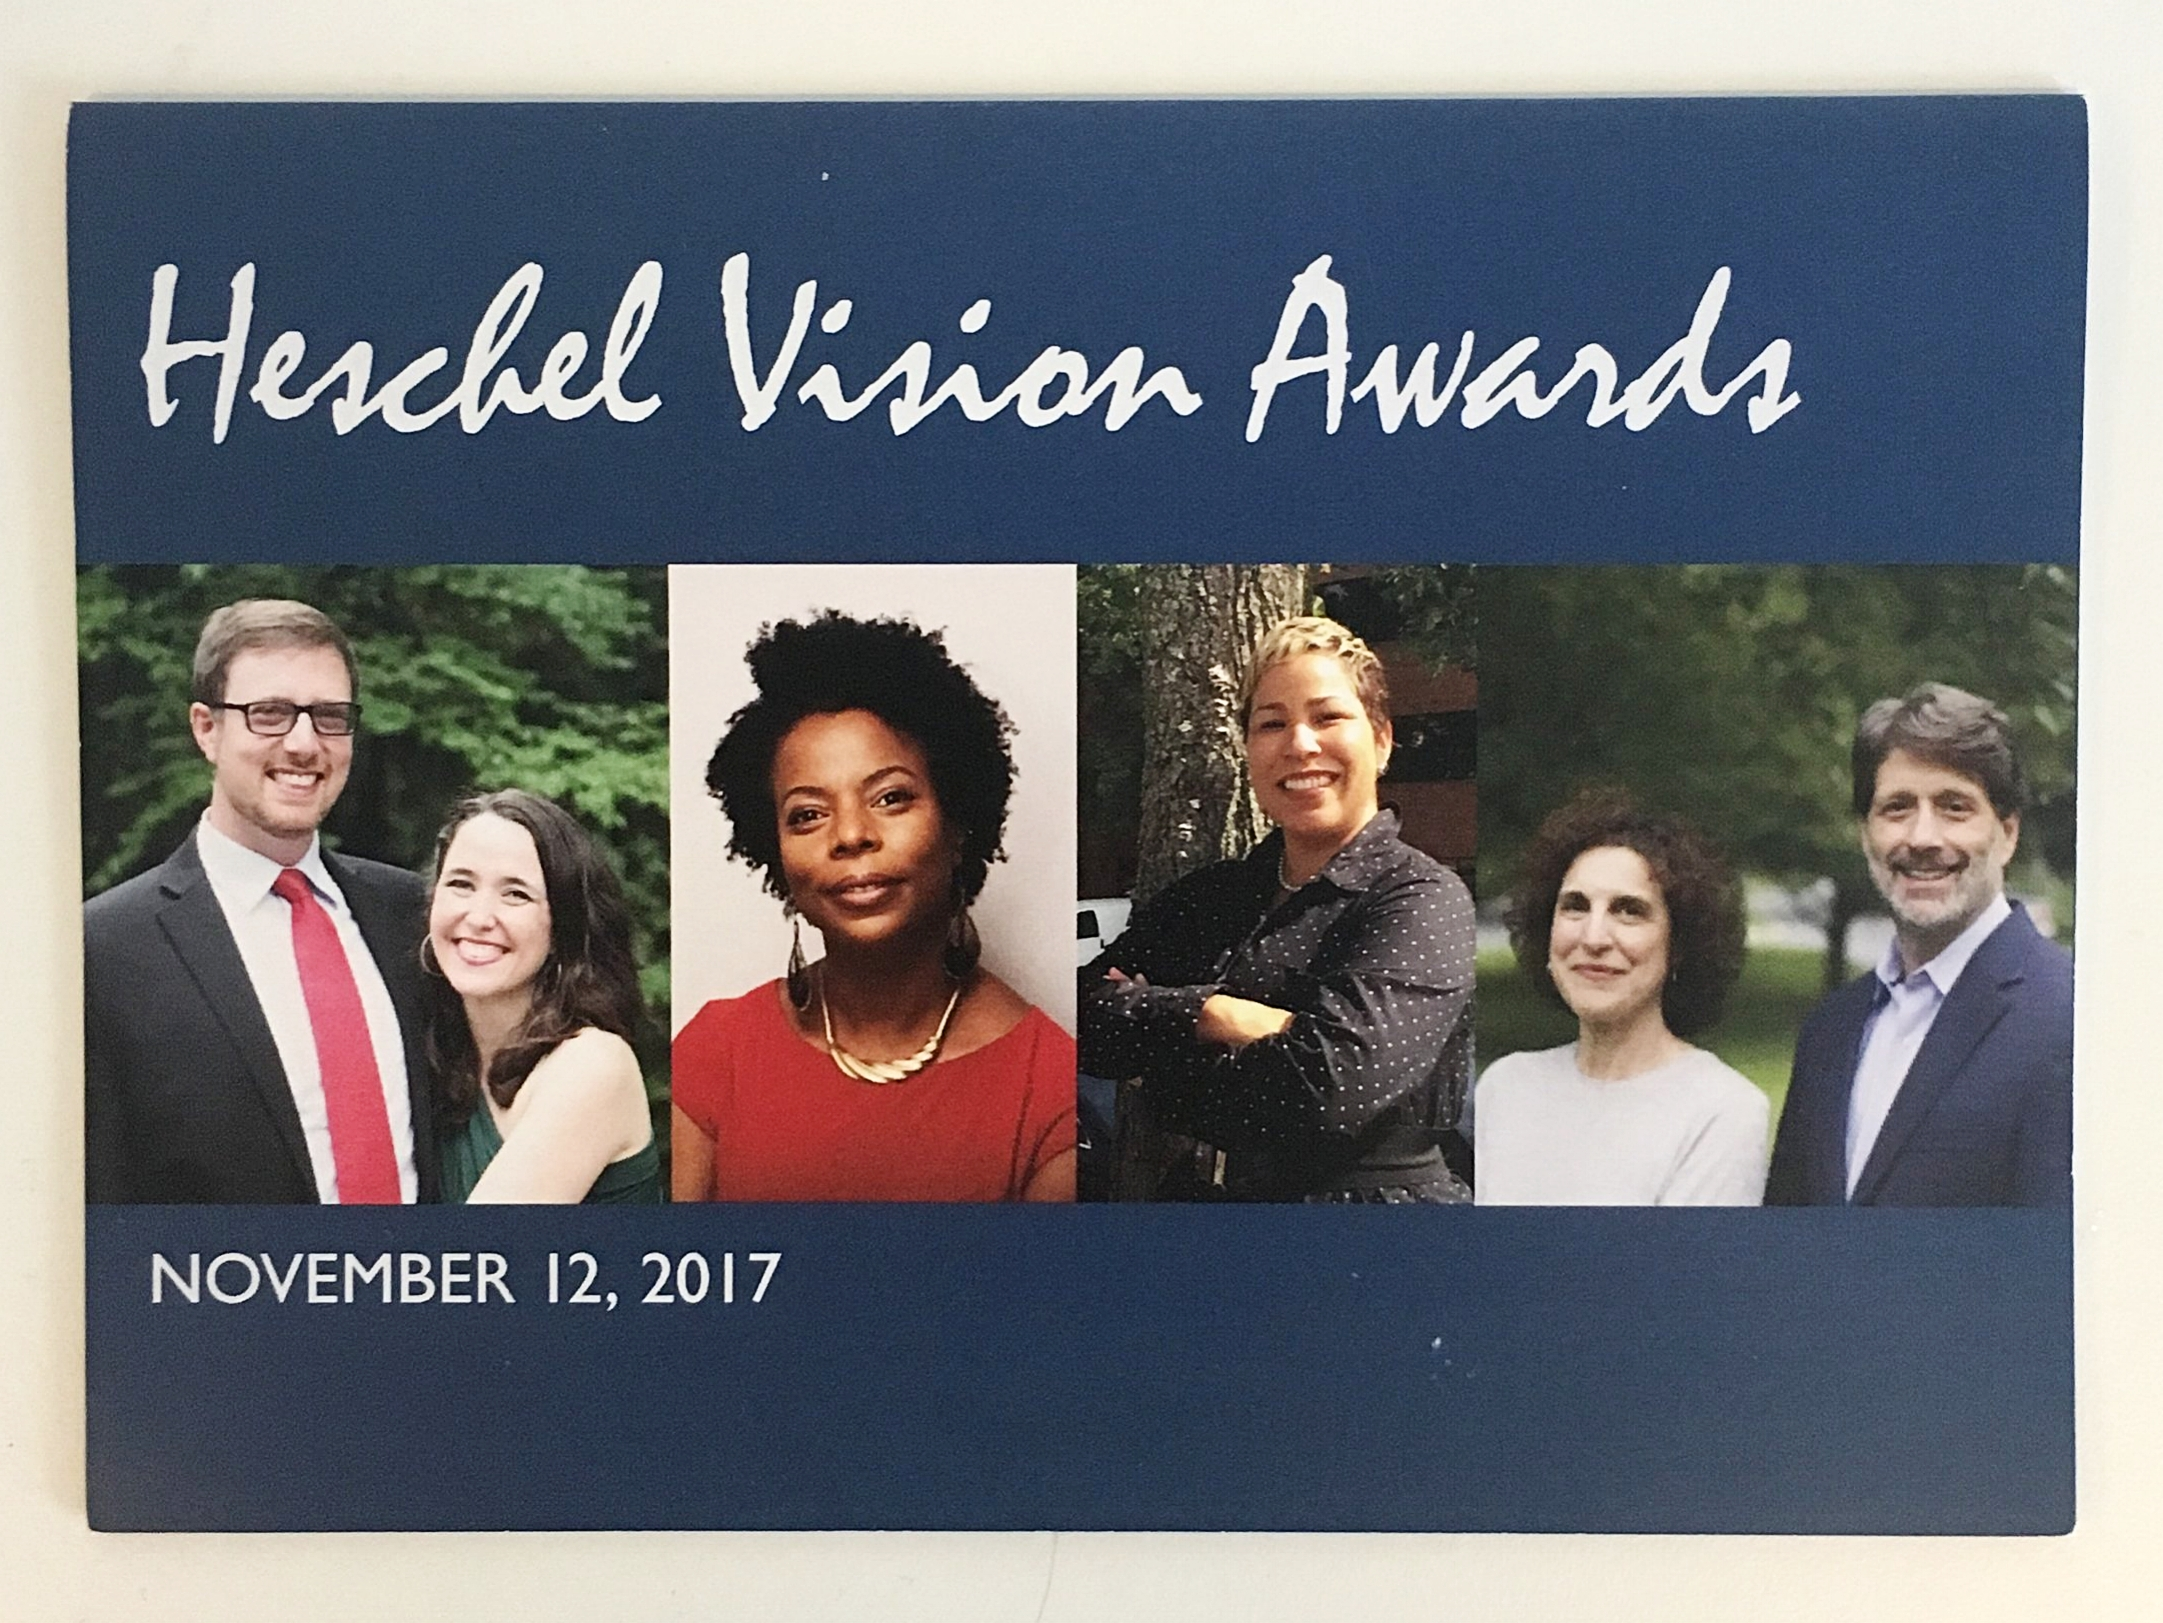 Heschel Vision Awards 2017 - Invitation - Front